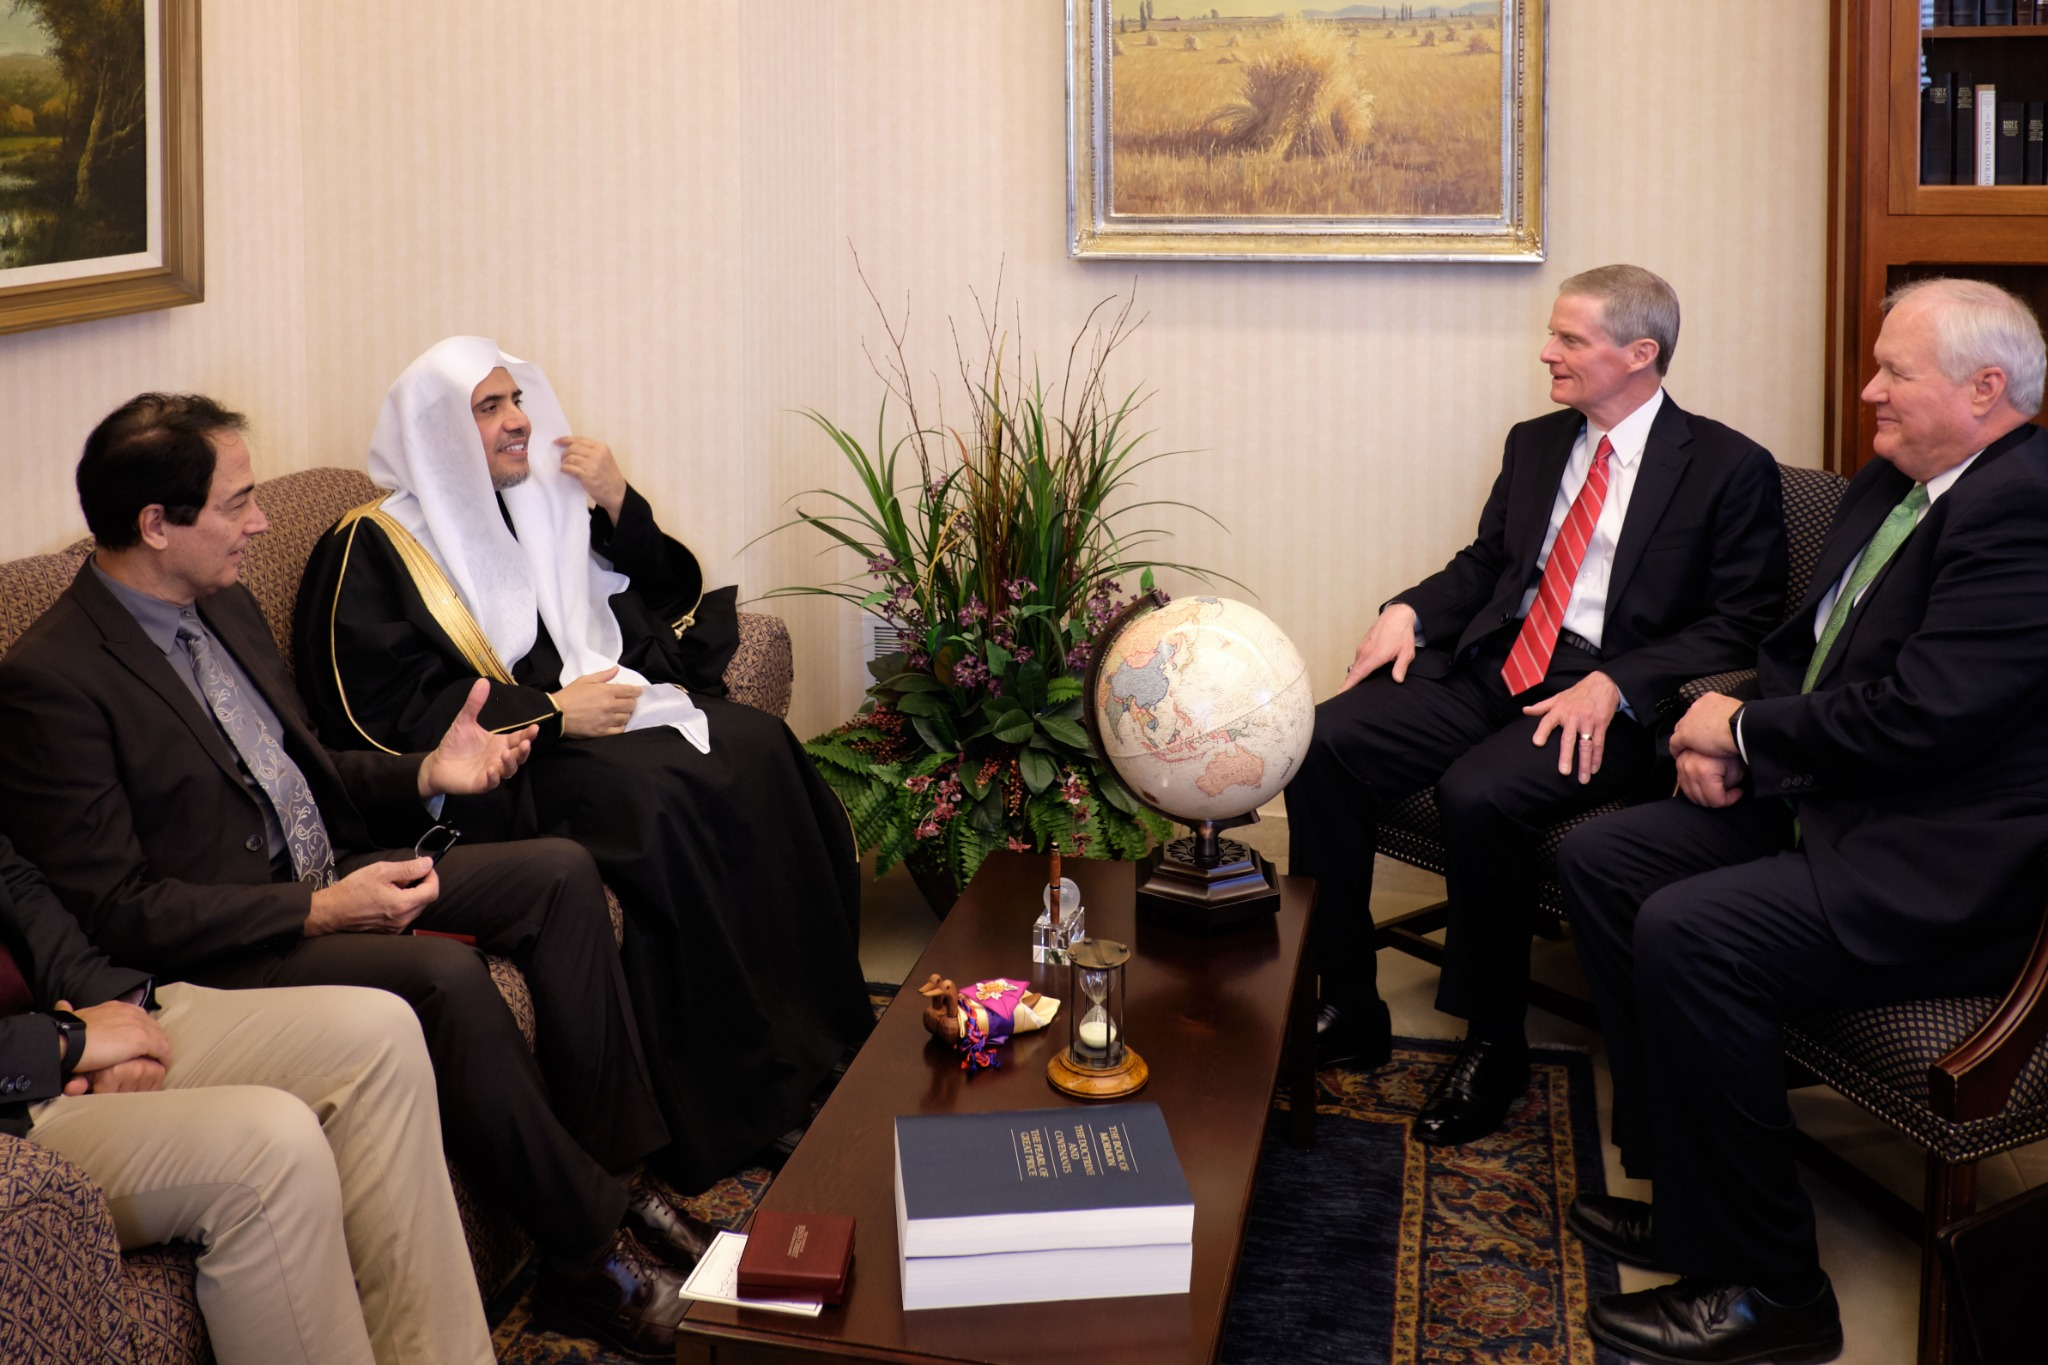 Elder David A. Bednar of the Quorum of the Twelve Apostles, second from right, and Elder Anthony D. Perkins, General Authority Seventy, far right, greet His Excellency Dr. Mohammad Al-Issa, secretary-general of the Muslim World League, on Nov. 5, 2019.